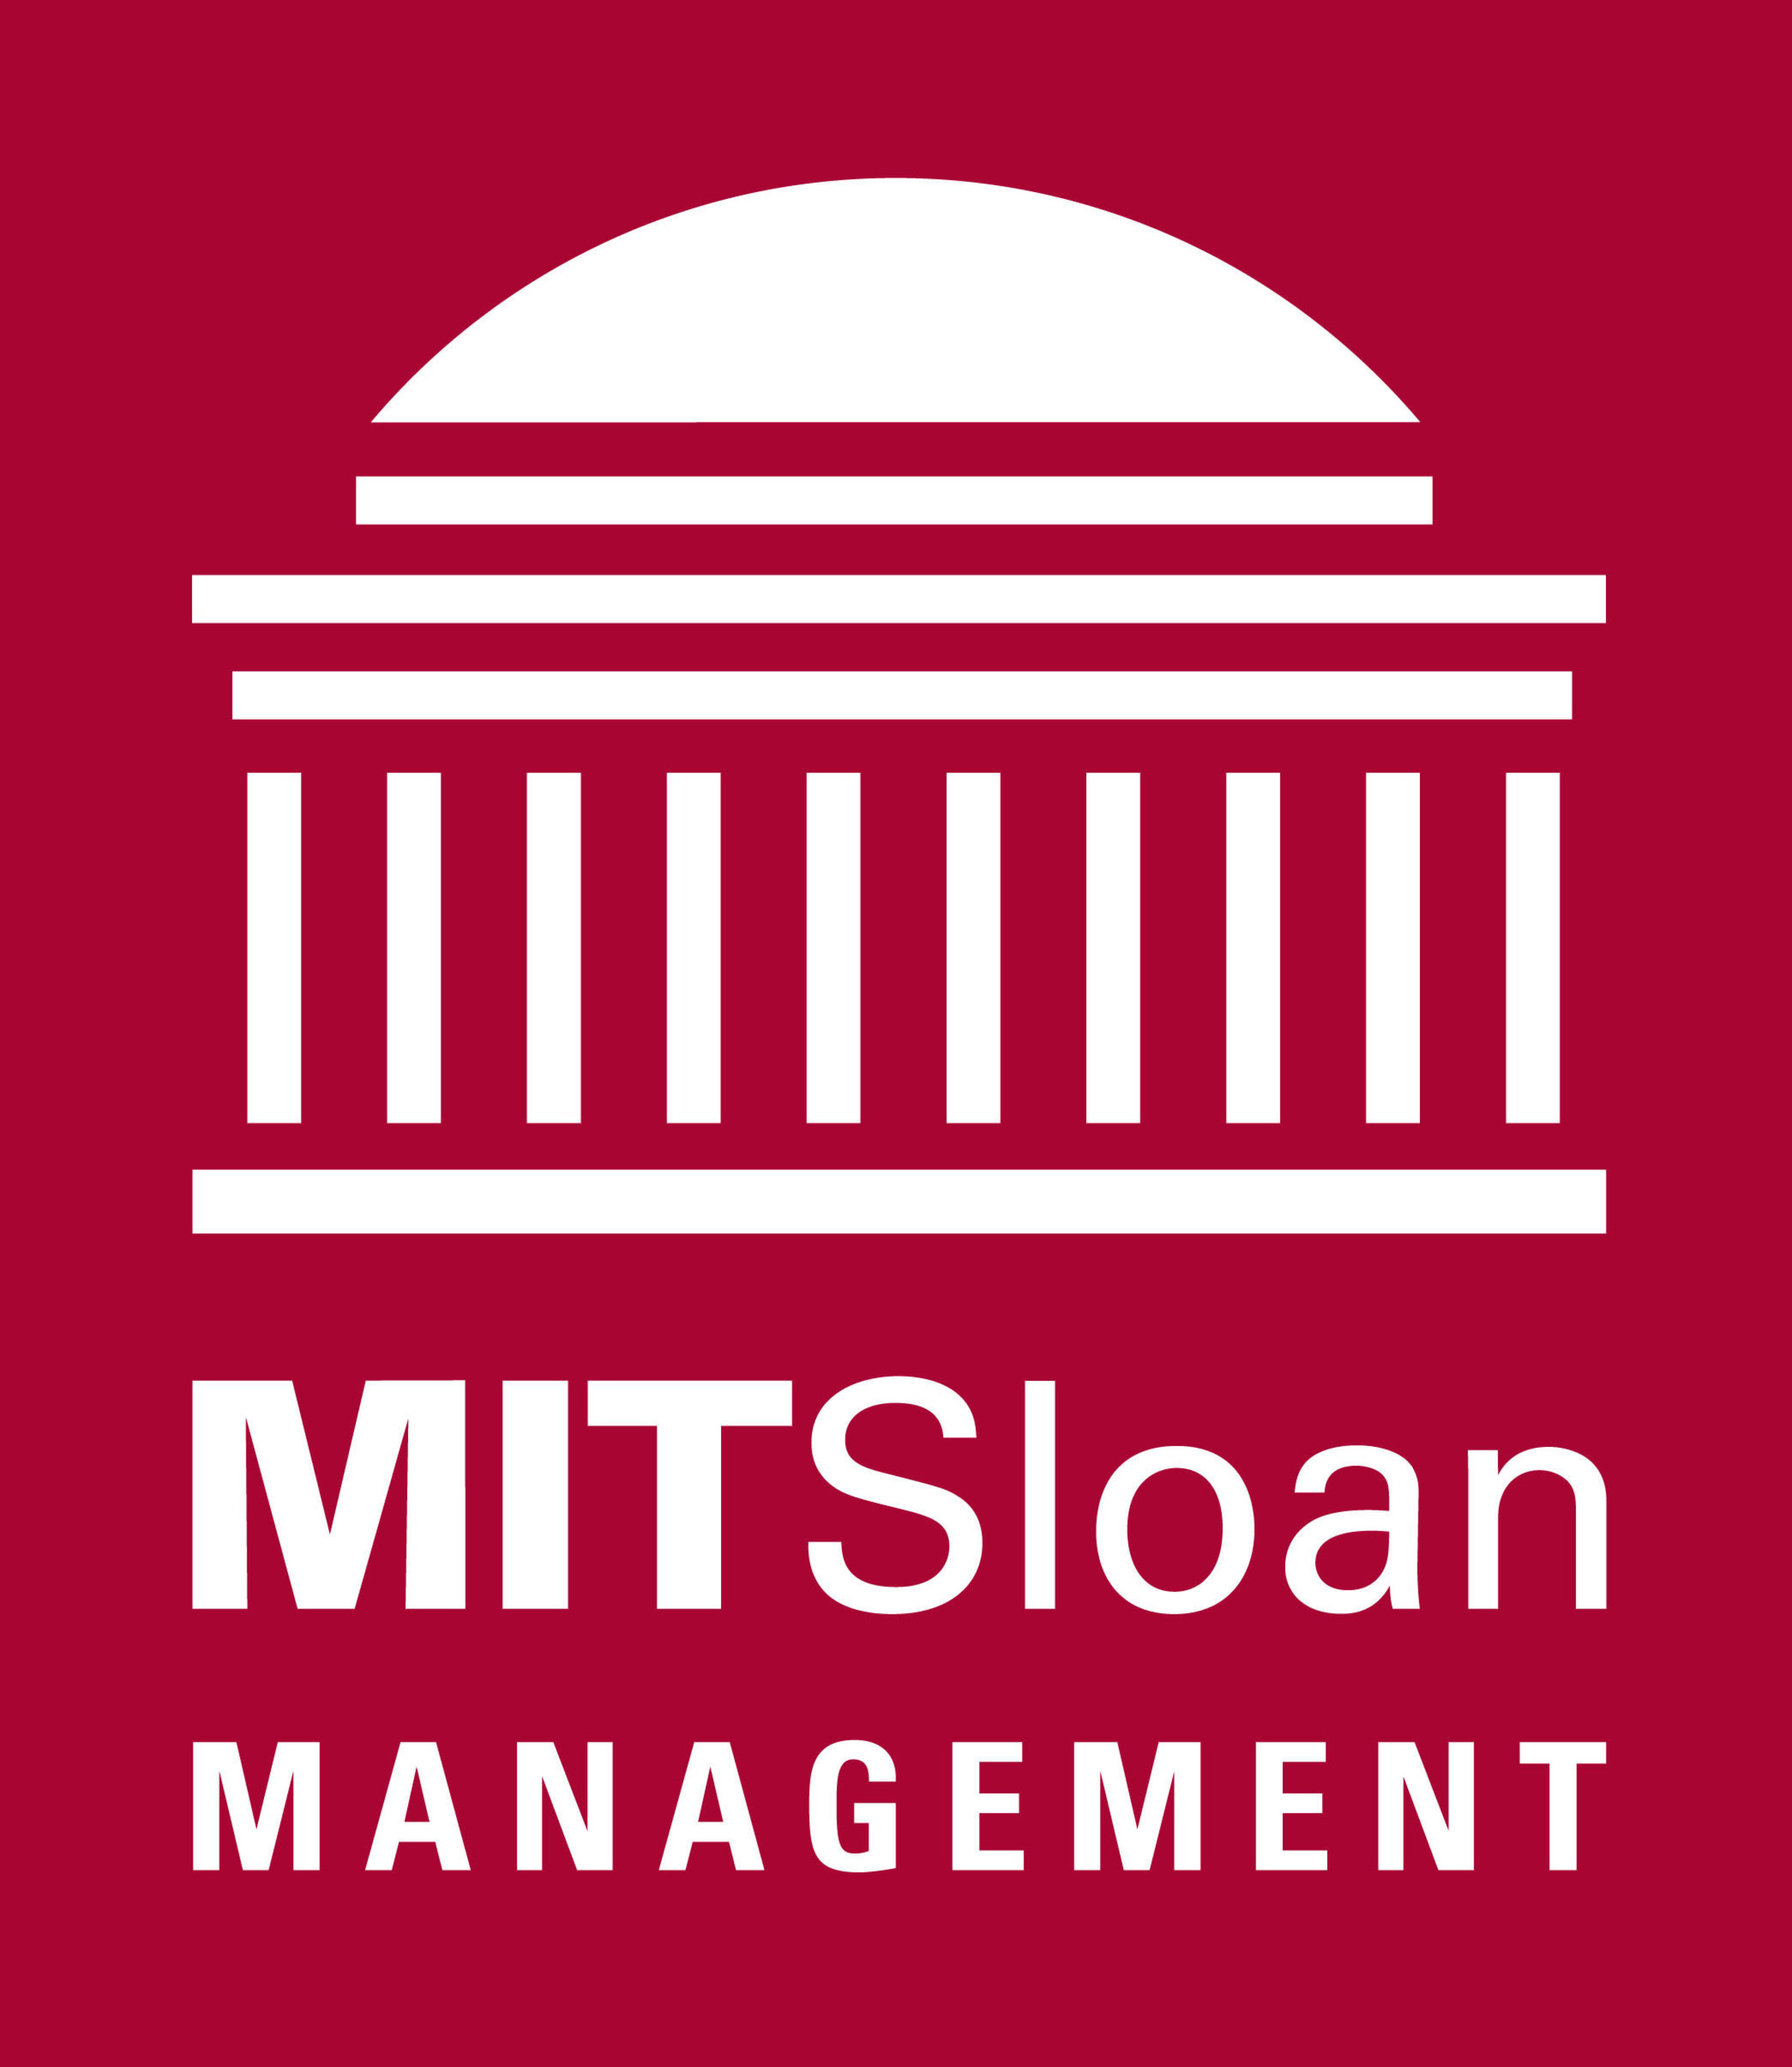 Mit China Management Education Project Celebrates 20th Anniversary